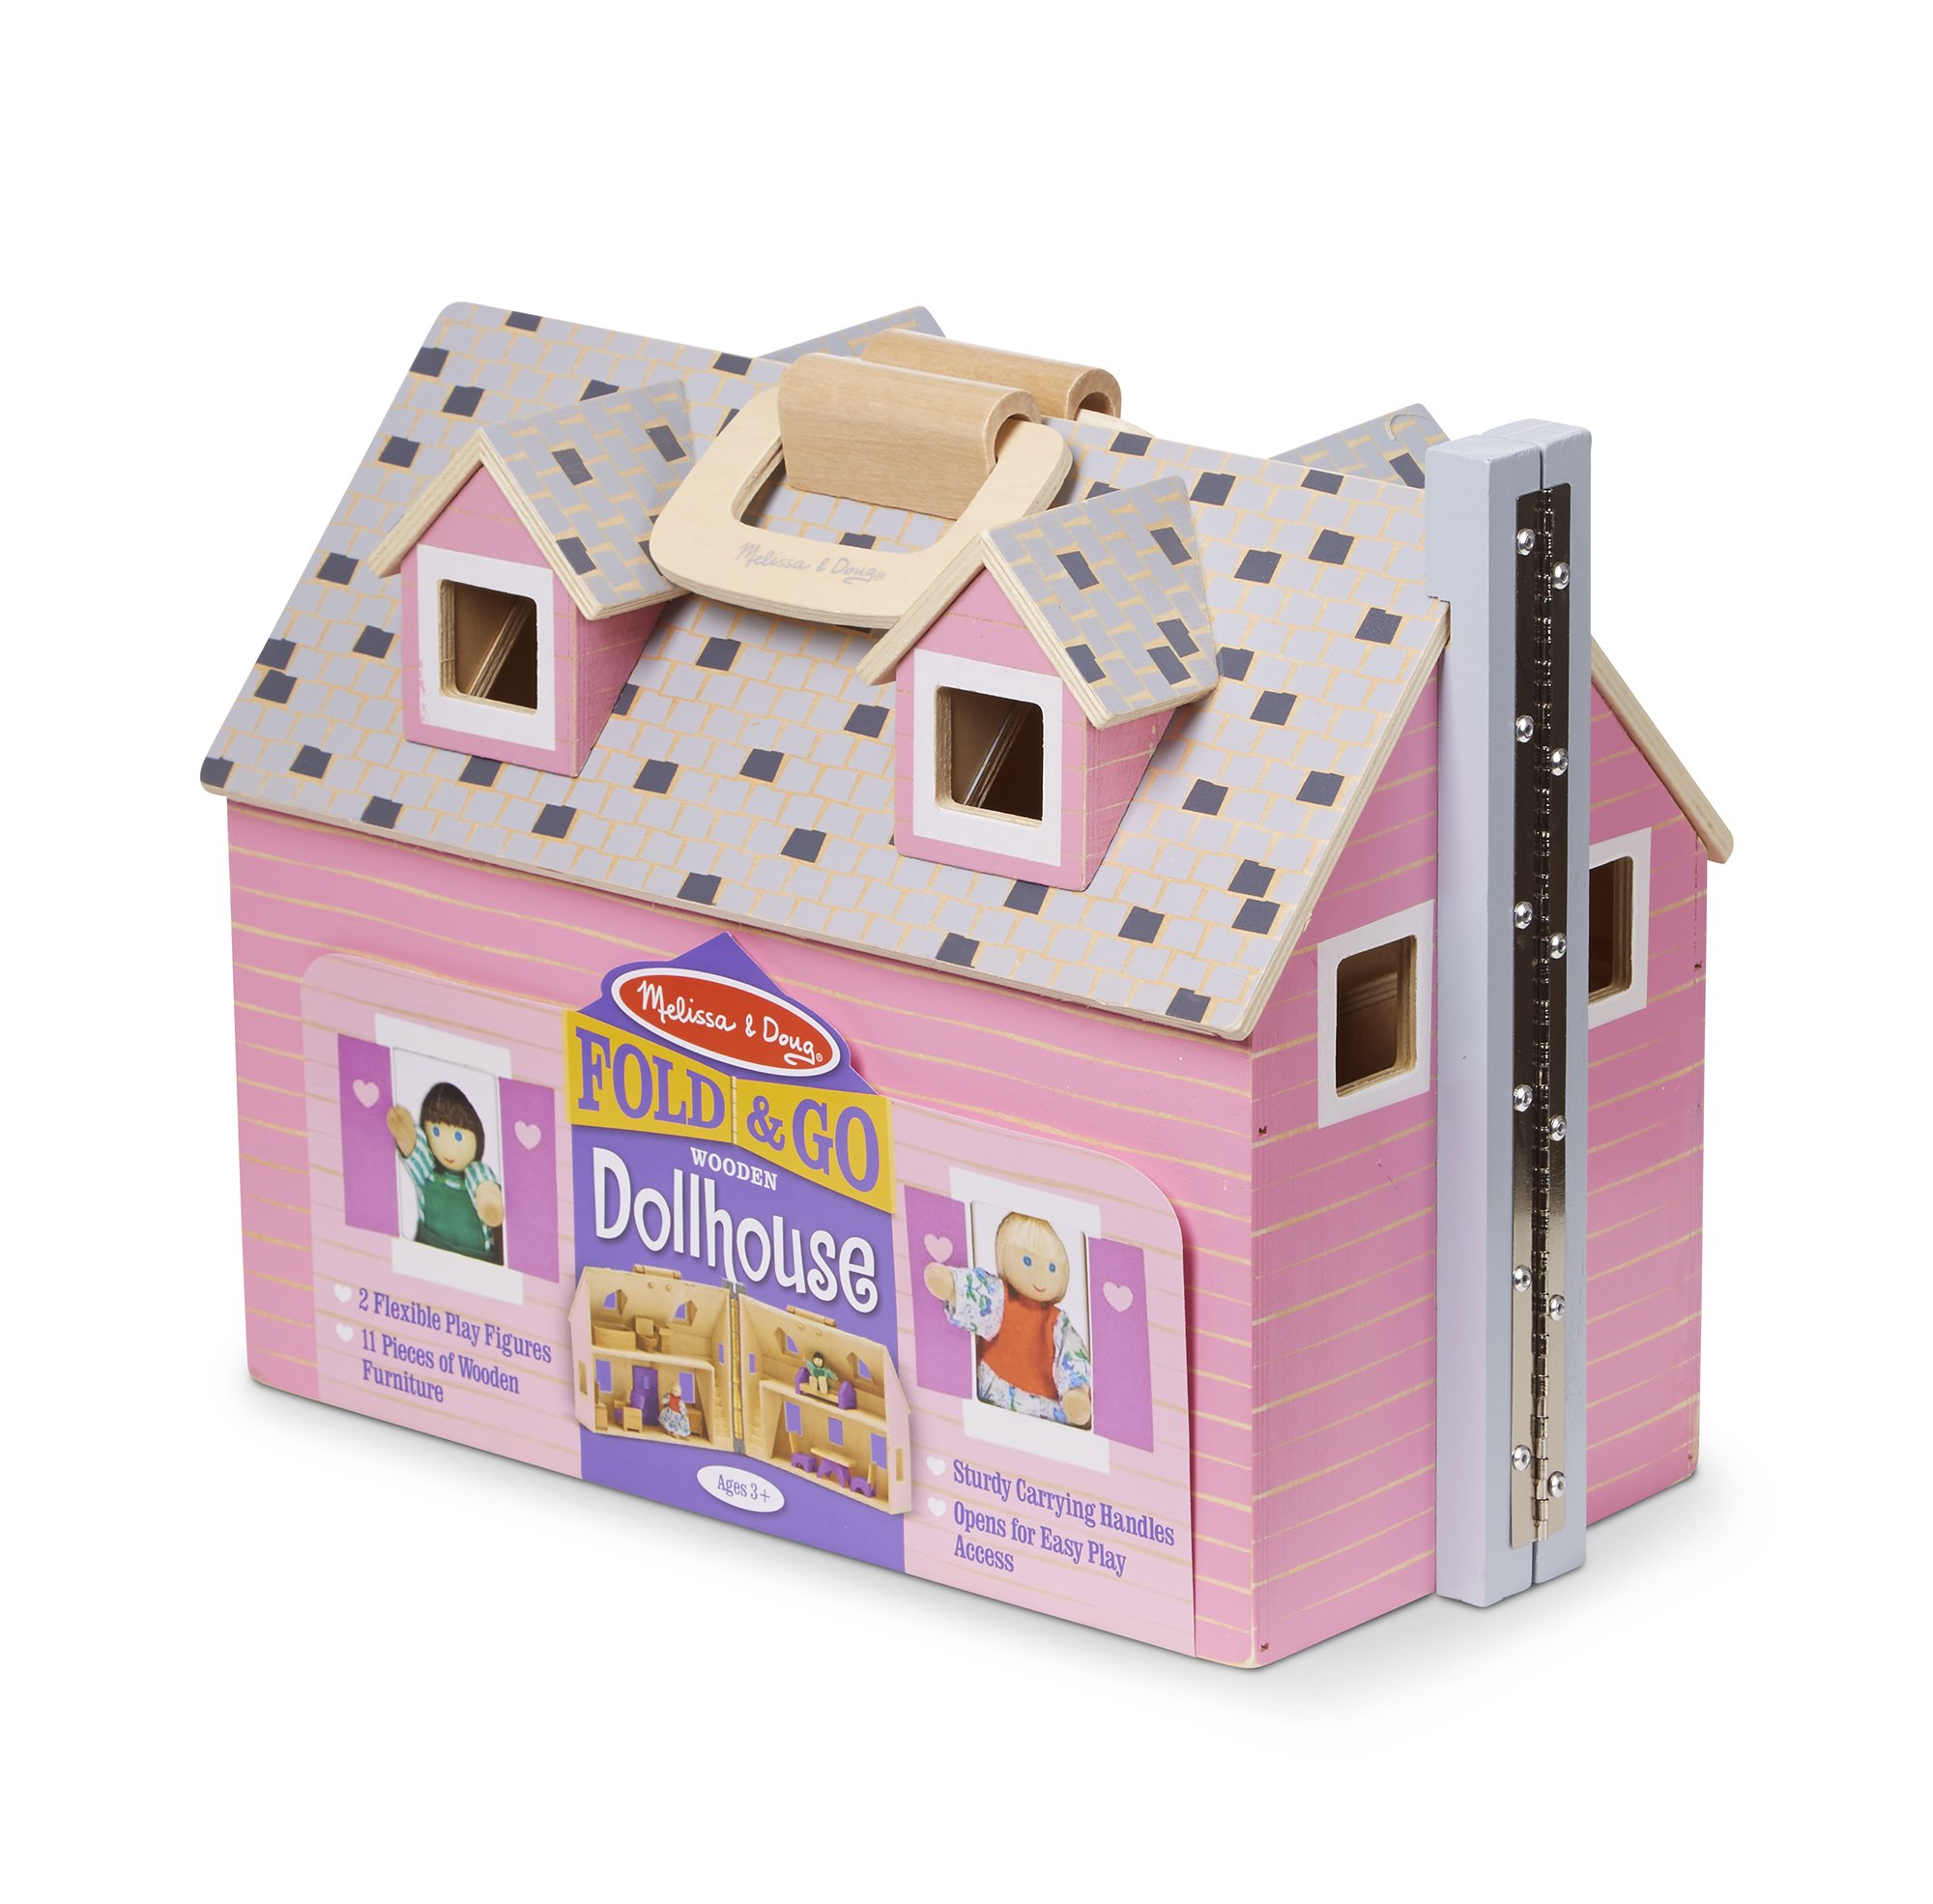 Details About Melissa Doug Fold And Go Wooden Dollhouse With 2 Dolls And Wooden Furniture